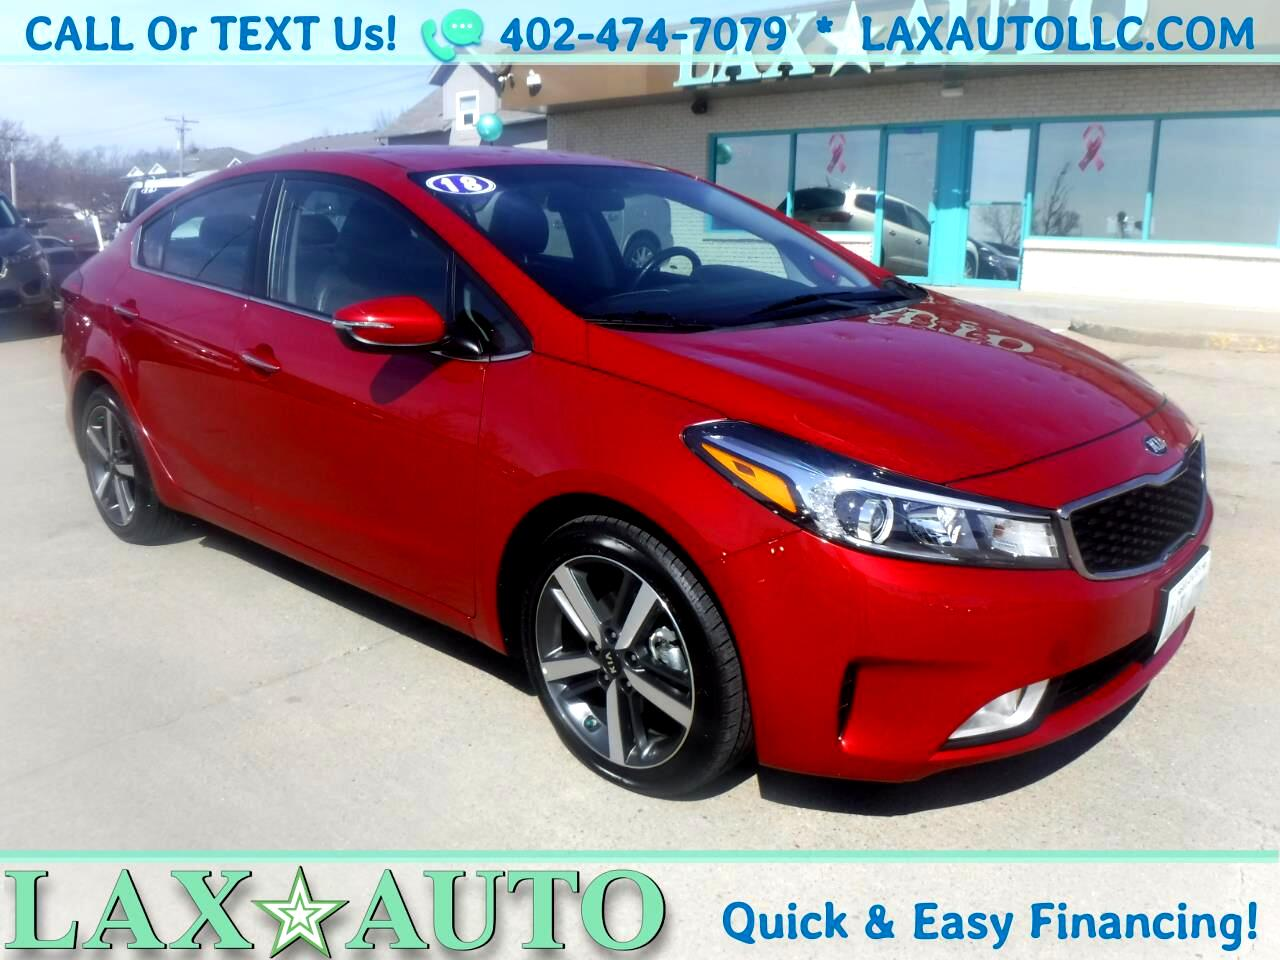 2018 Kia Forte EX Sedan * Only 3K Miles!